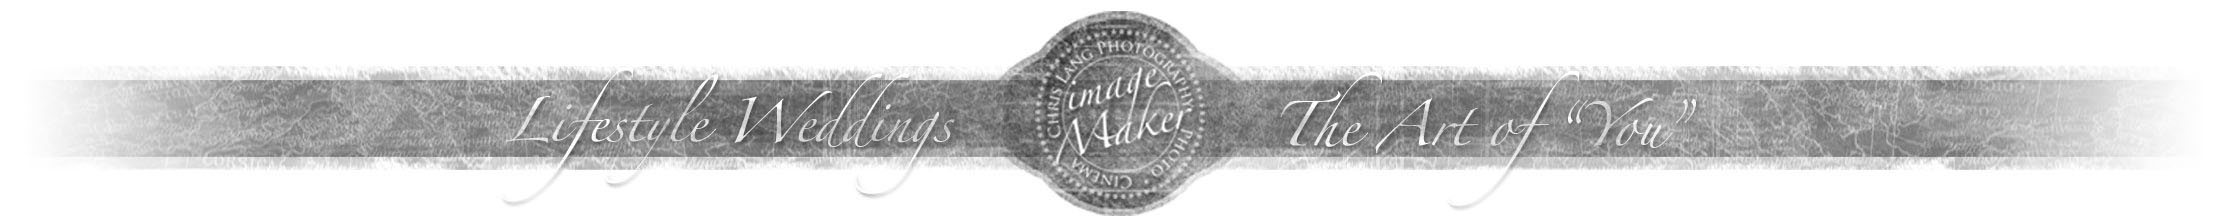 Wilmington NC Wedding Photography - Chris Lang Photography - Lifestyle Wedding Photography